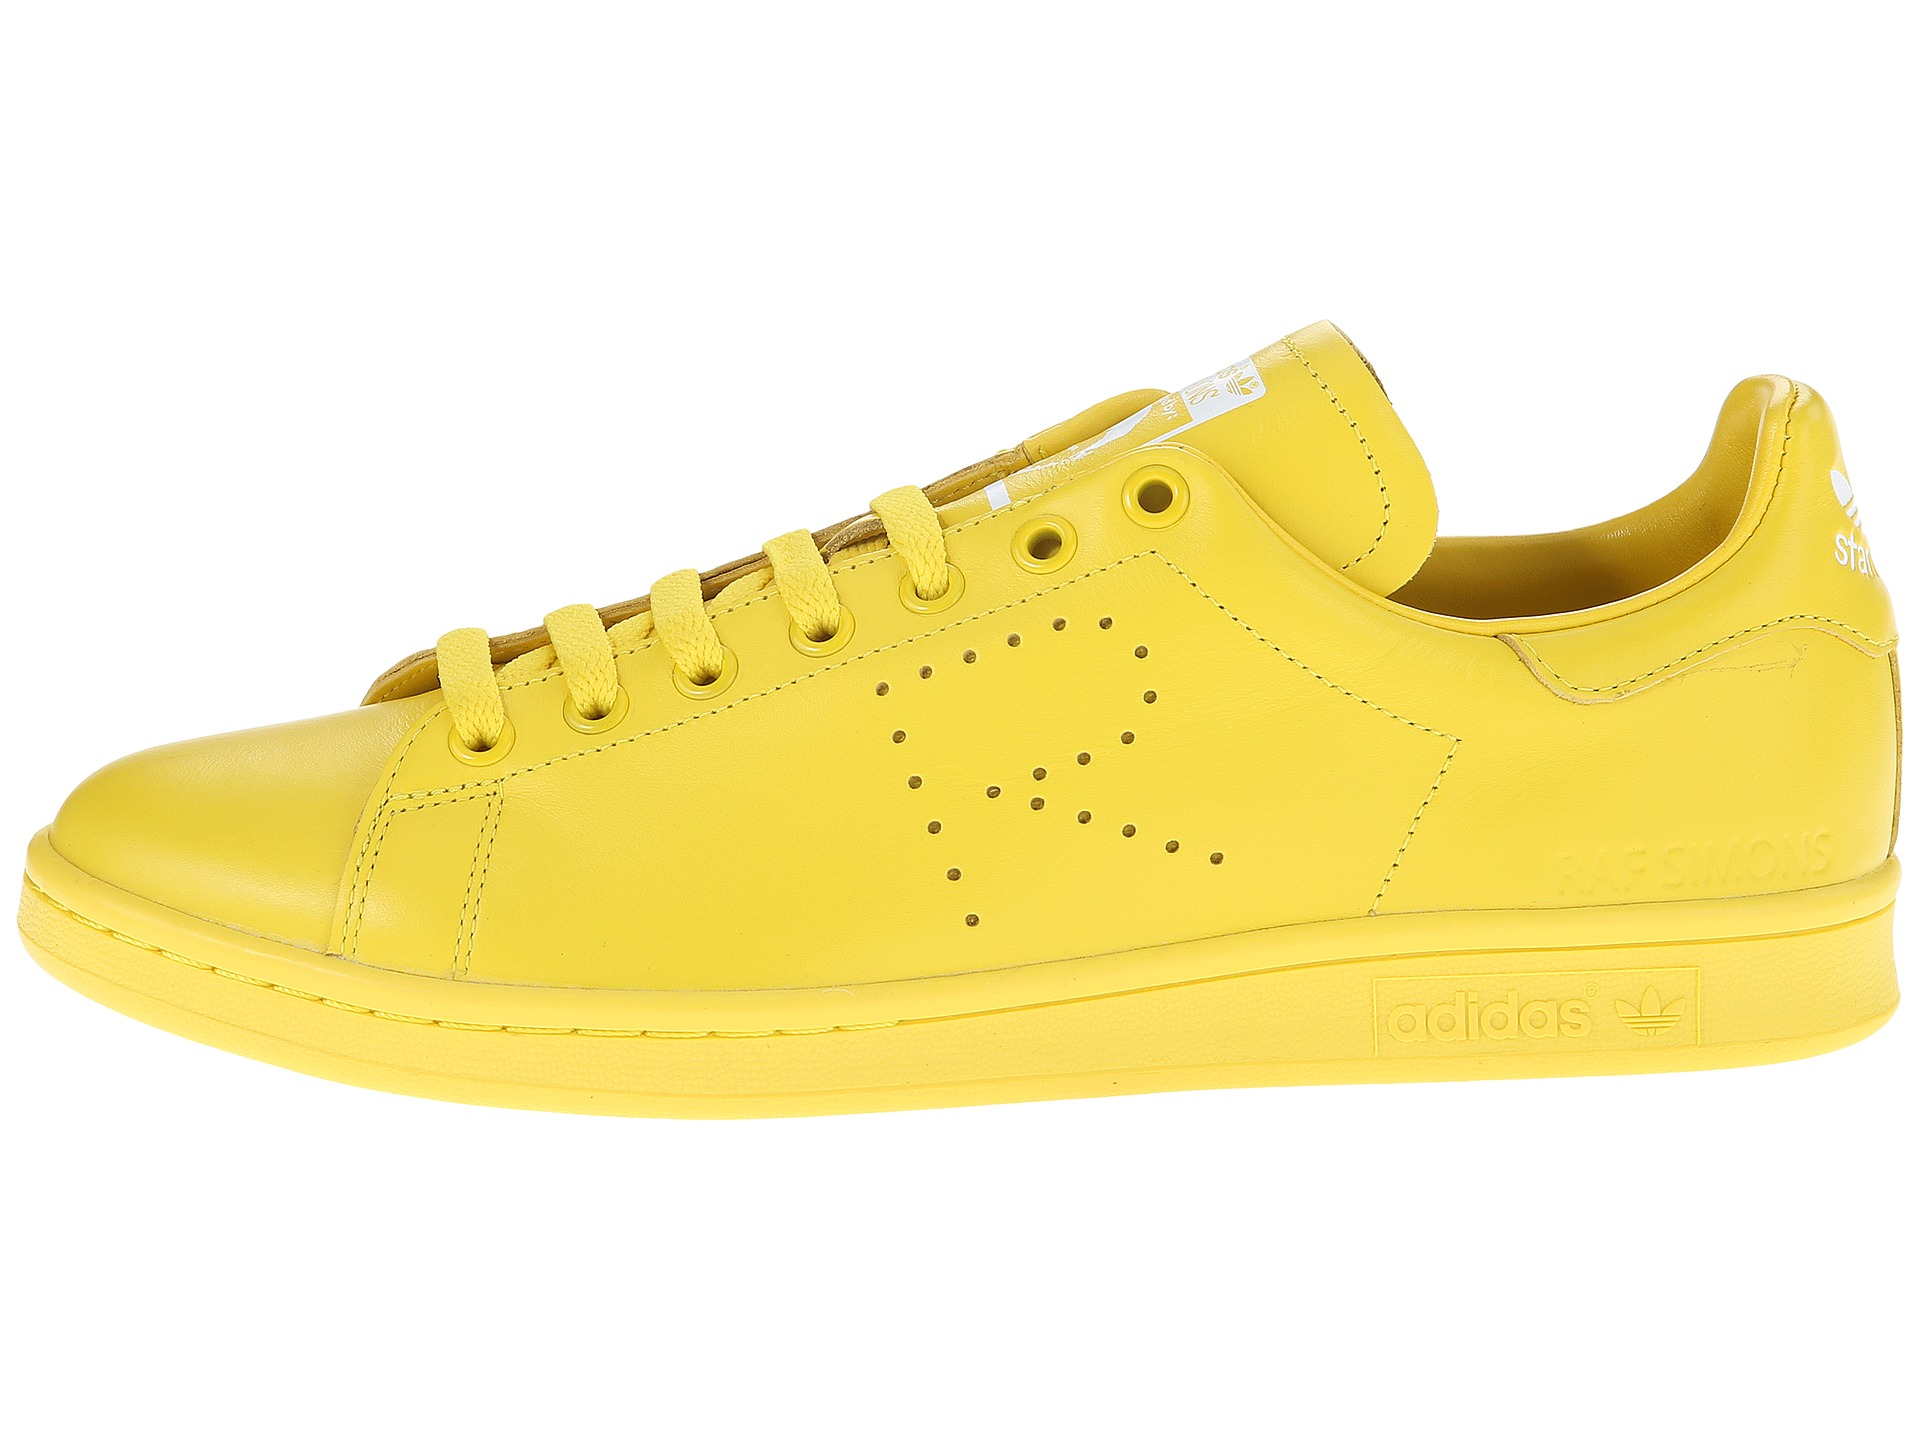 dc7b3cf97 raf simons stan smith sneakers for kids girls boys